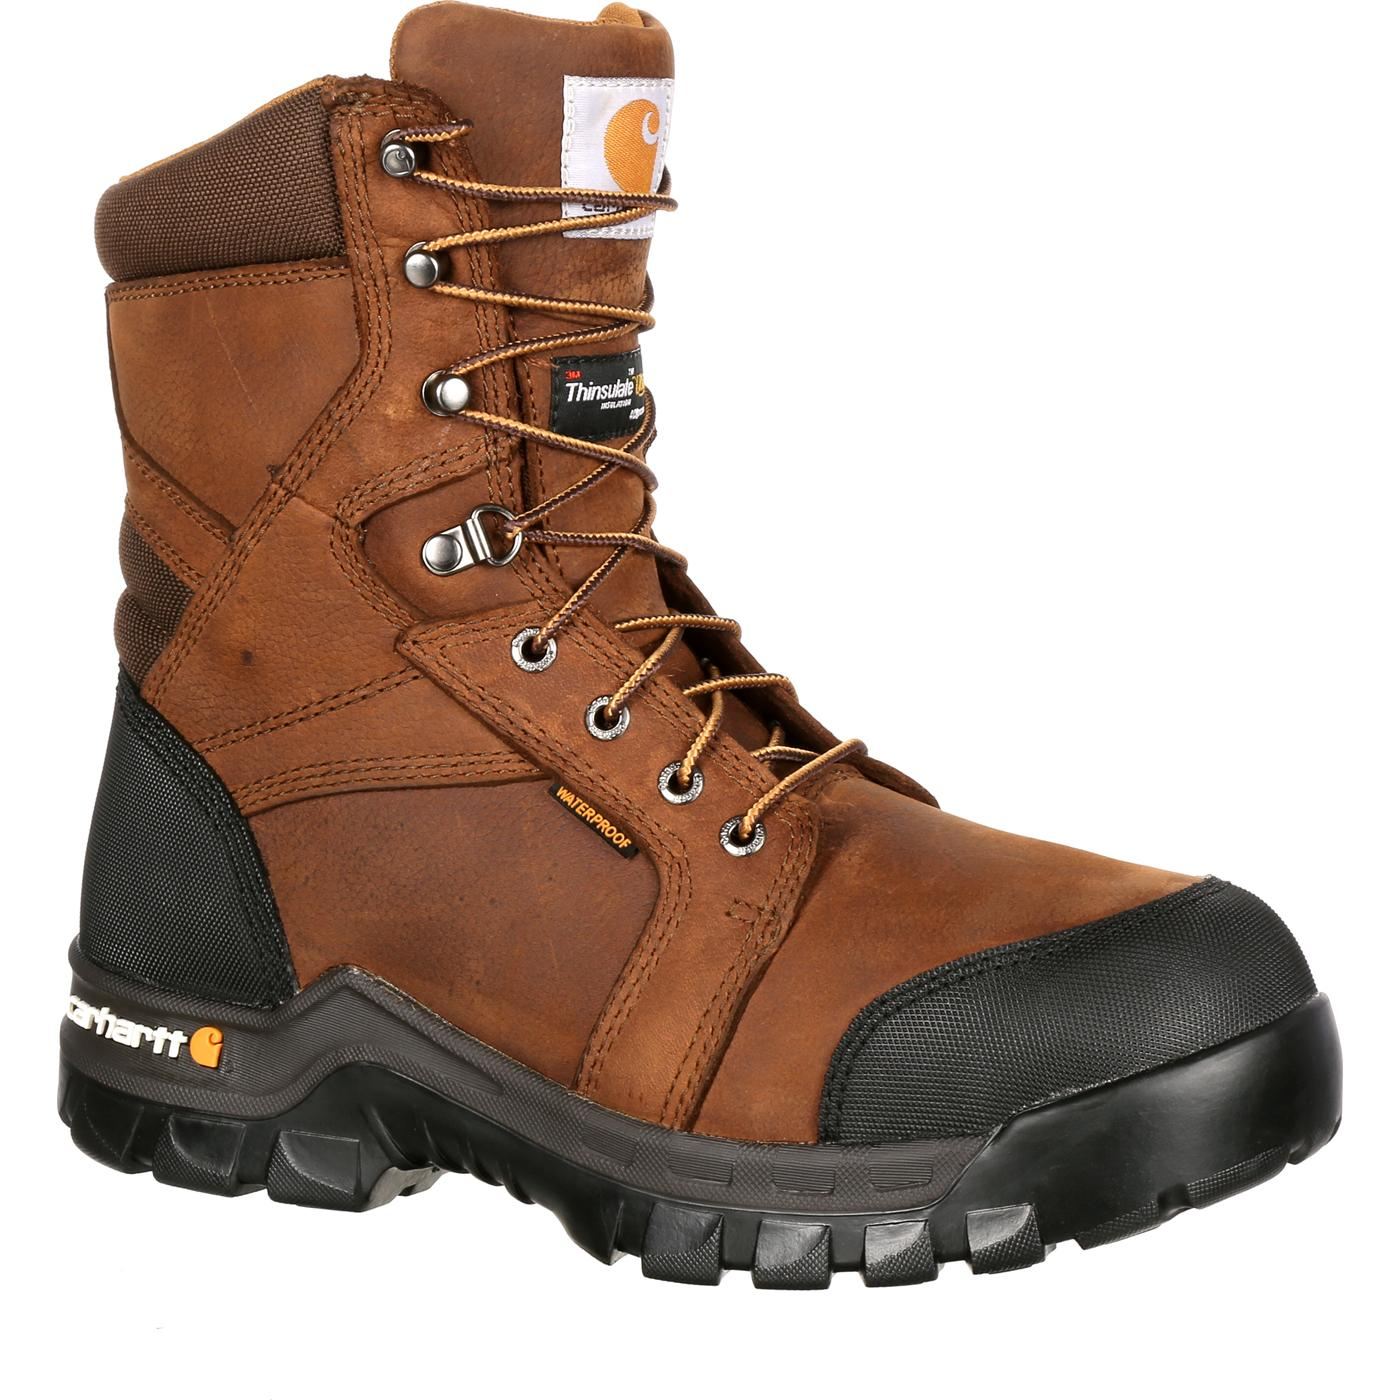 Carhartt Rugged Flex Ct Waterproof Insulated Work Boot